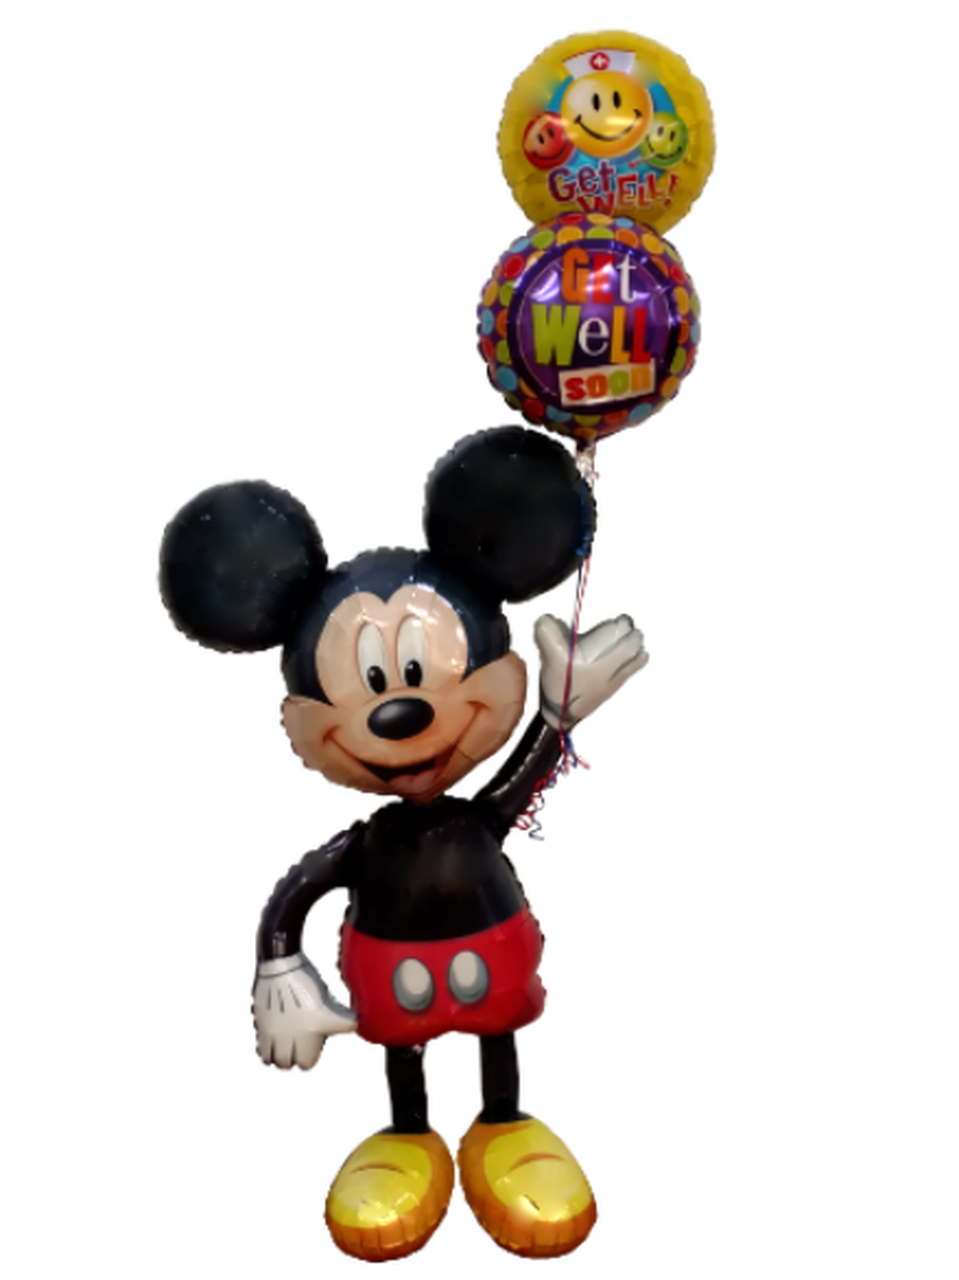 Clipart dayton ohio picture black and white library Get Well Mickey Mouse AirWalker picture black and white library